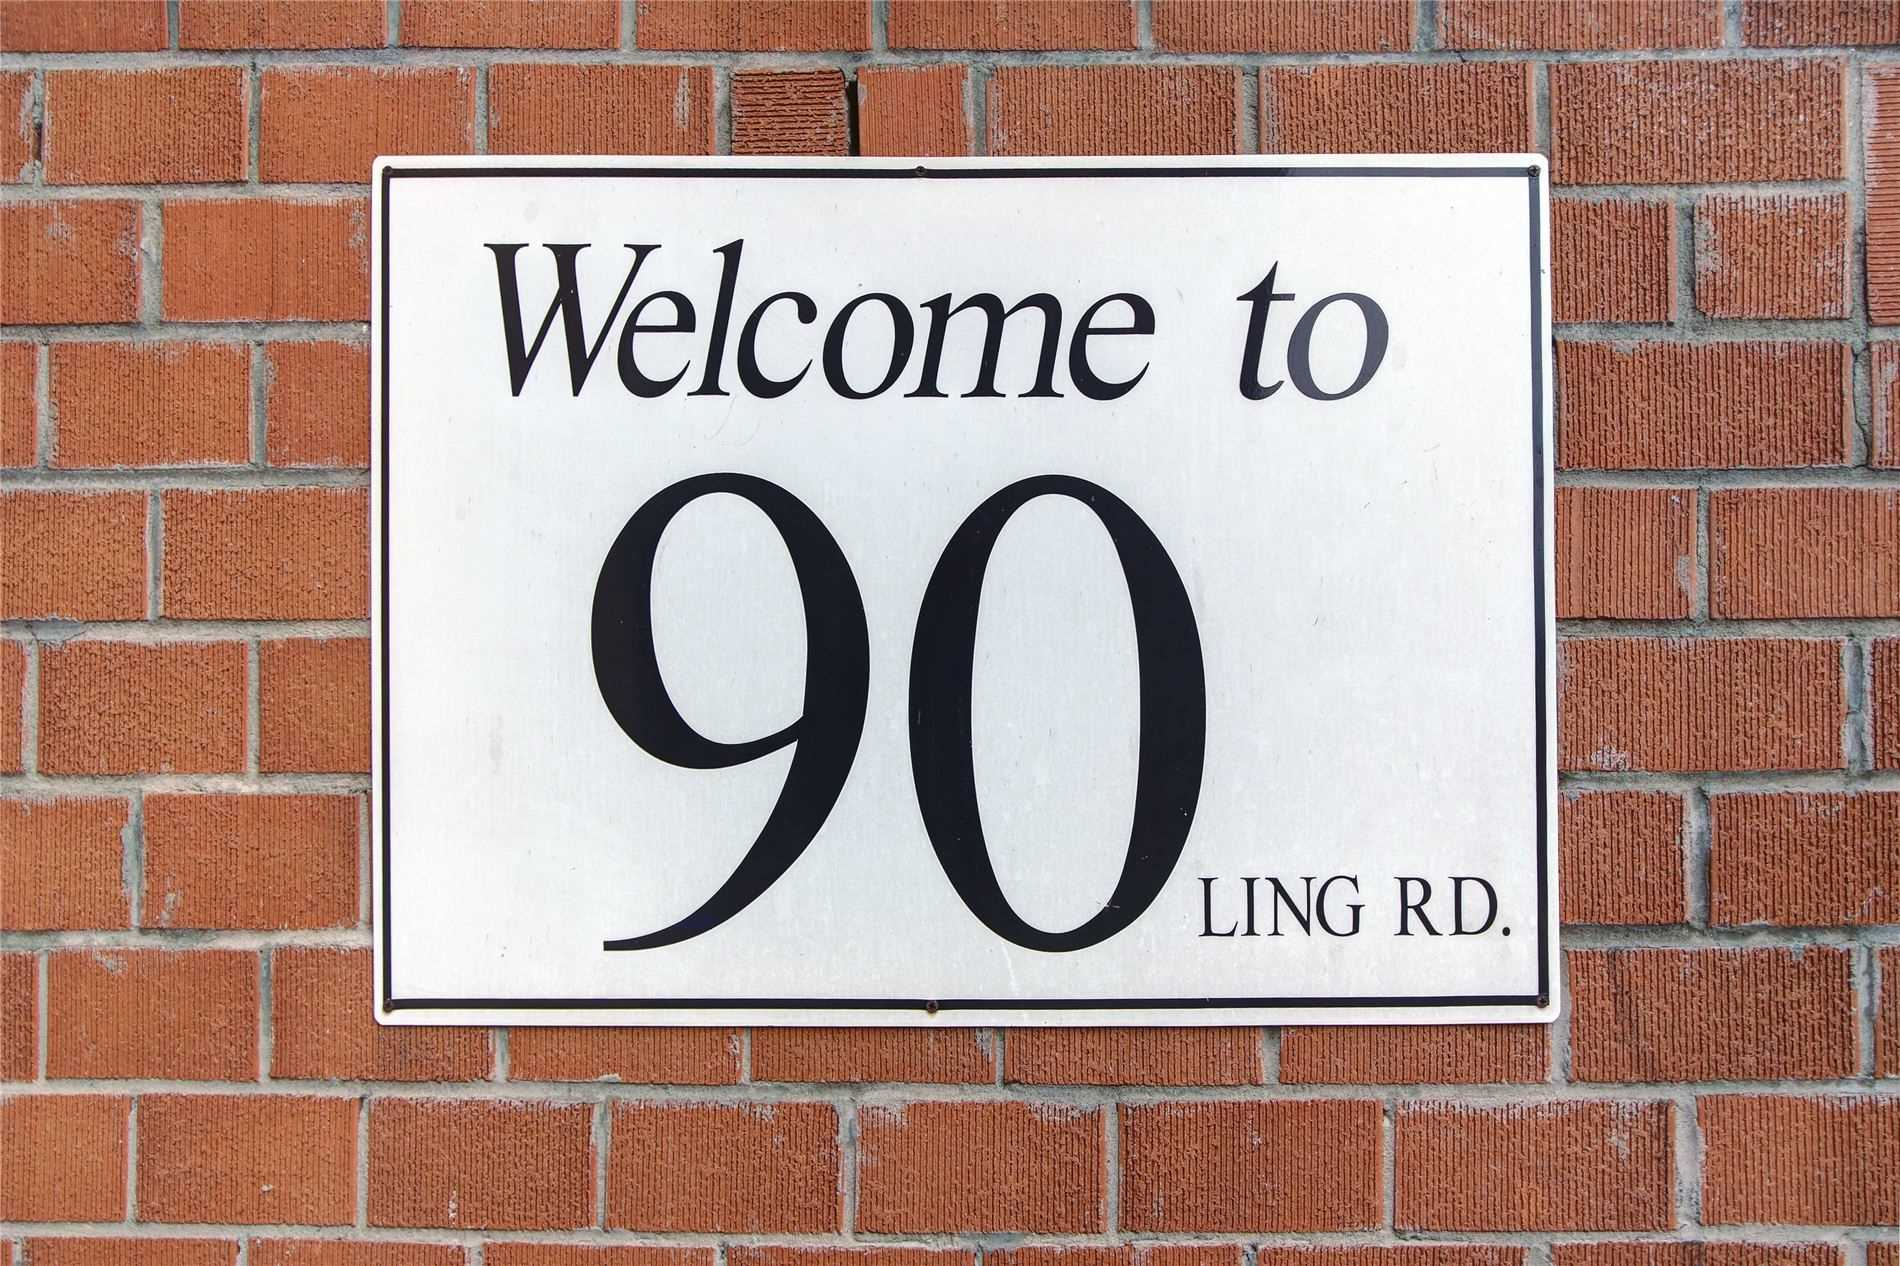 90-ling-rd